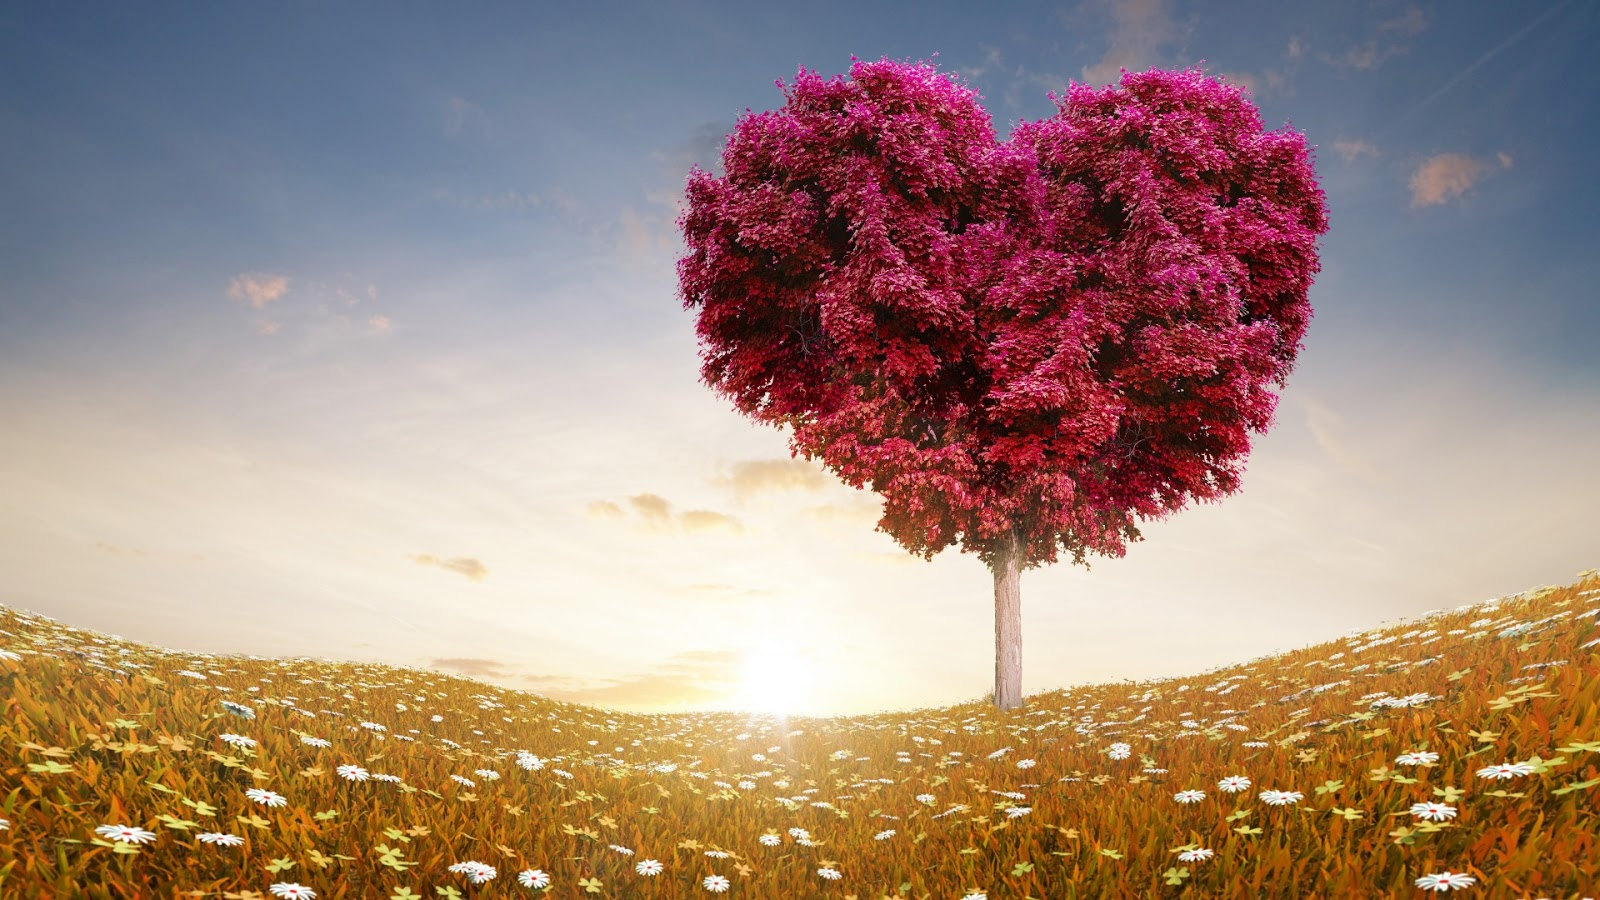 Love Heart Tree Fields 1920x1080 Wallpaper